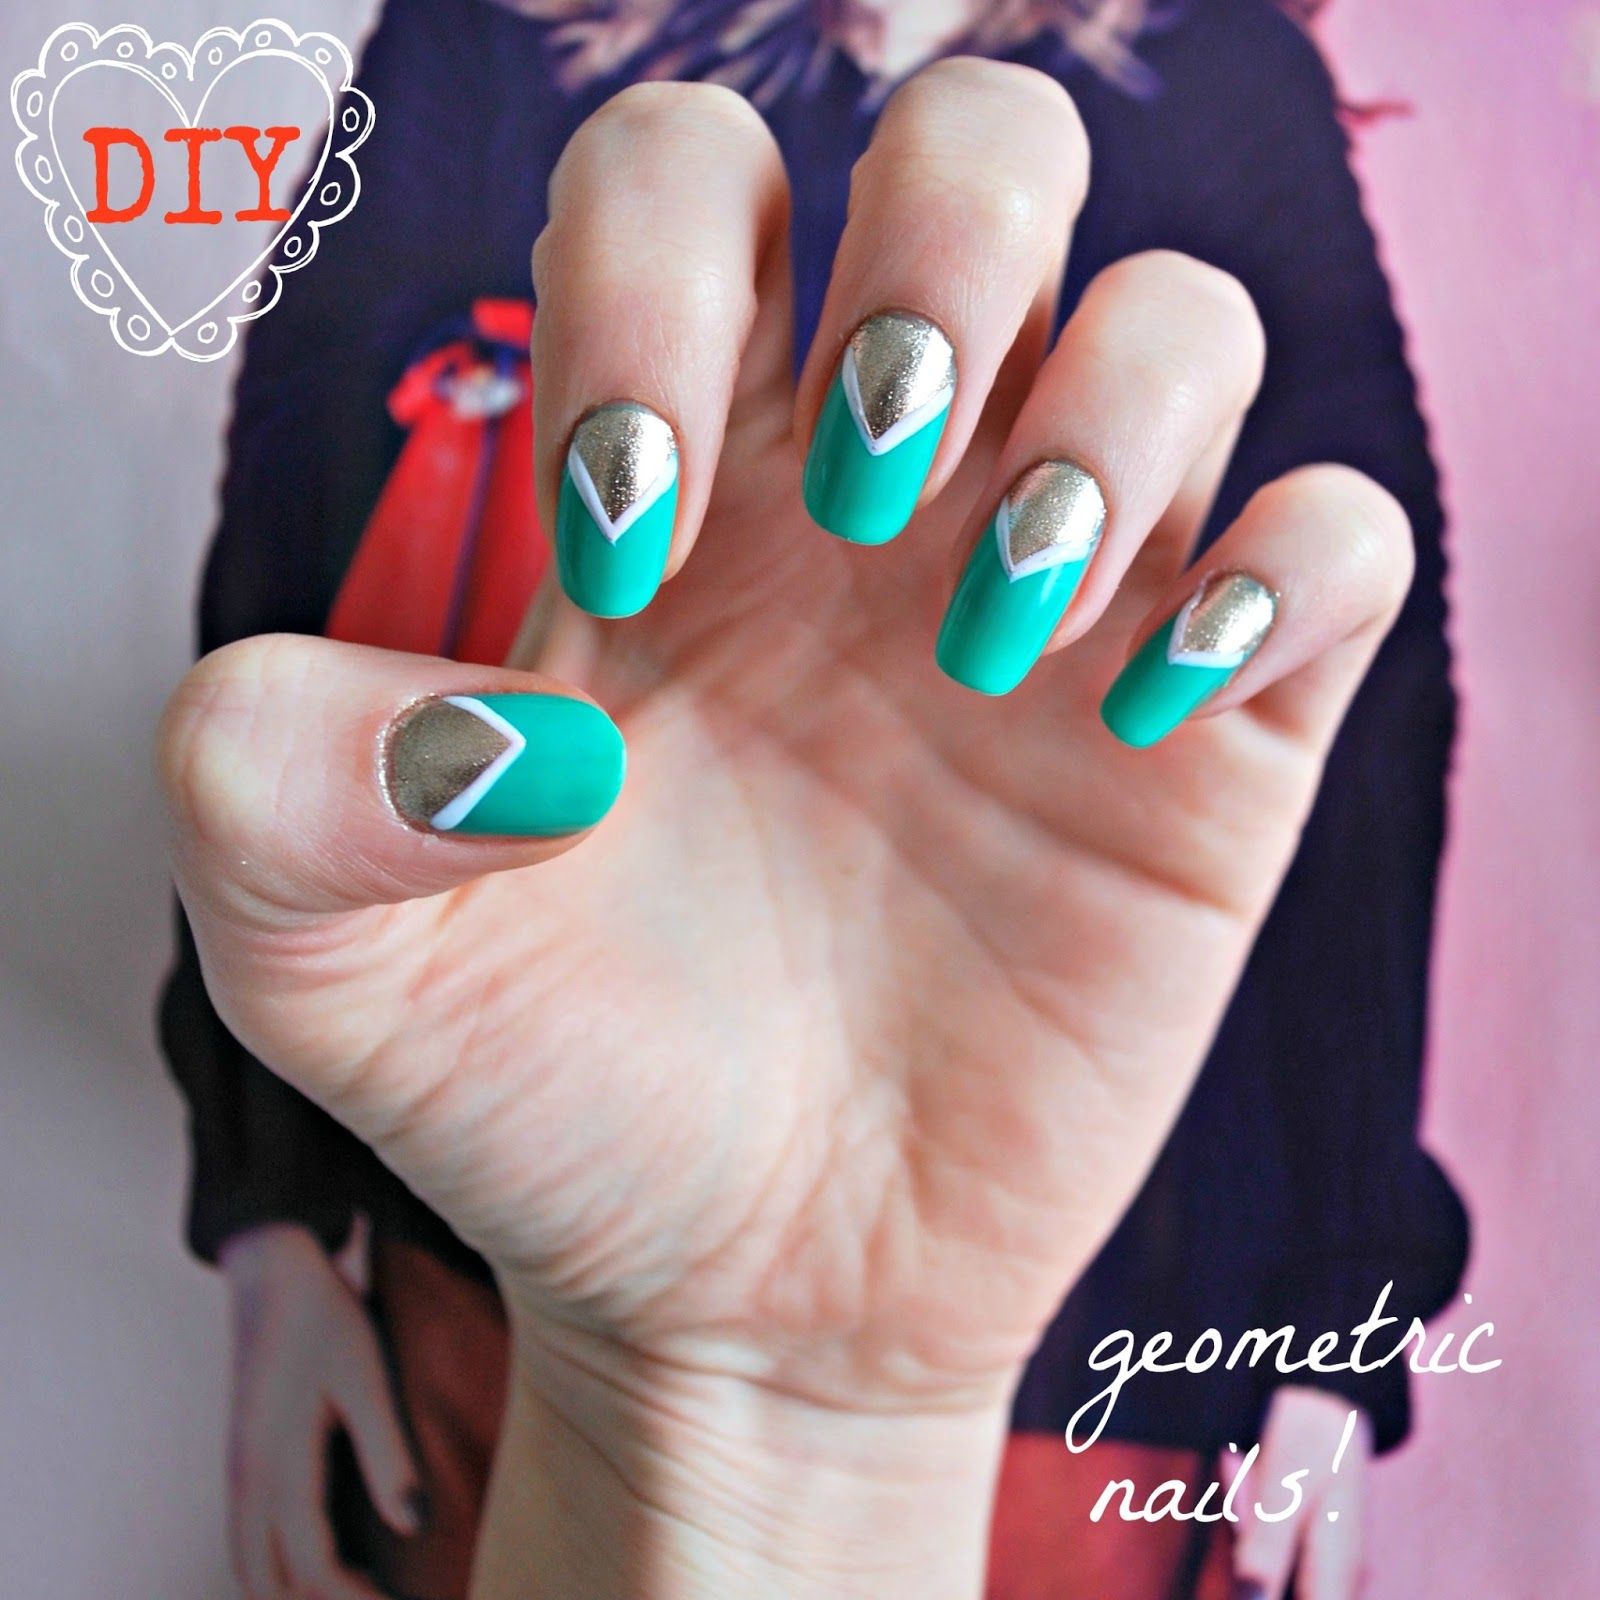 DIY Easy Geometric Nail Art!